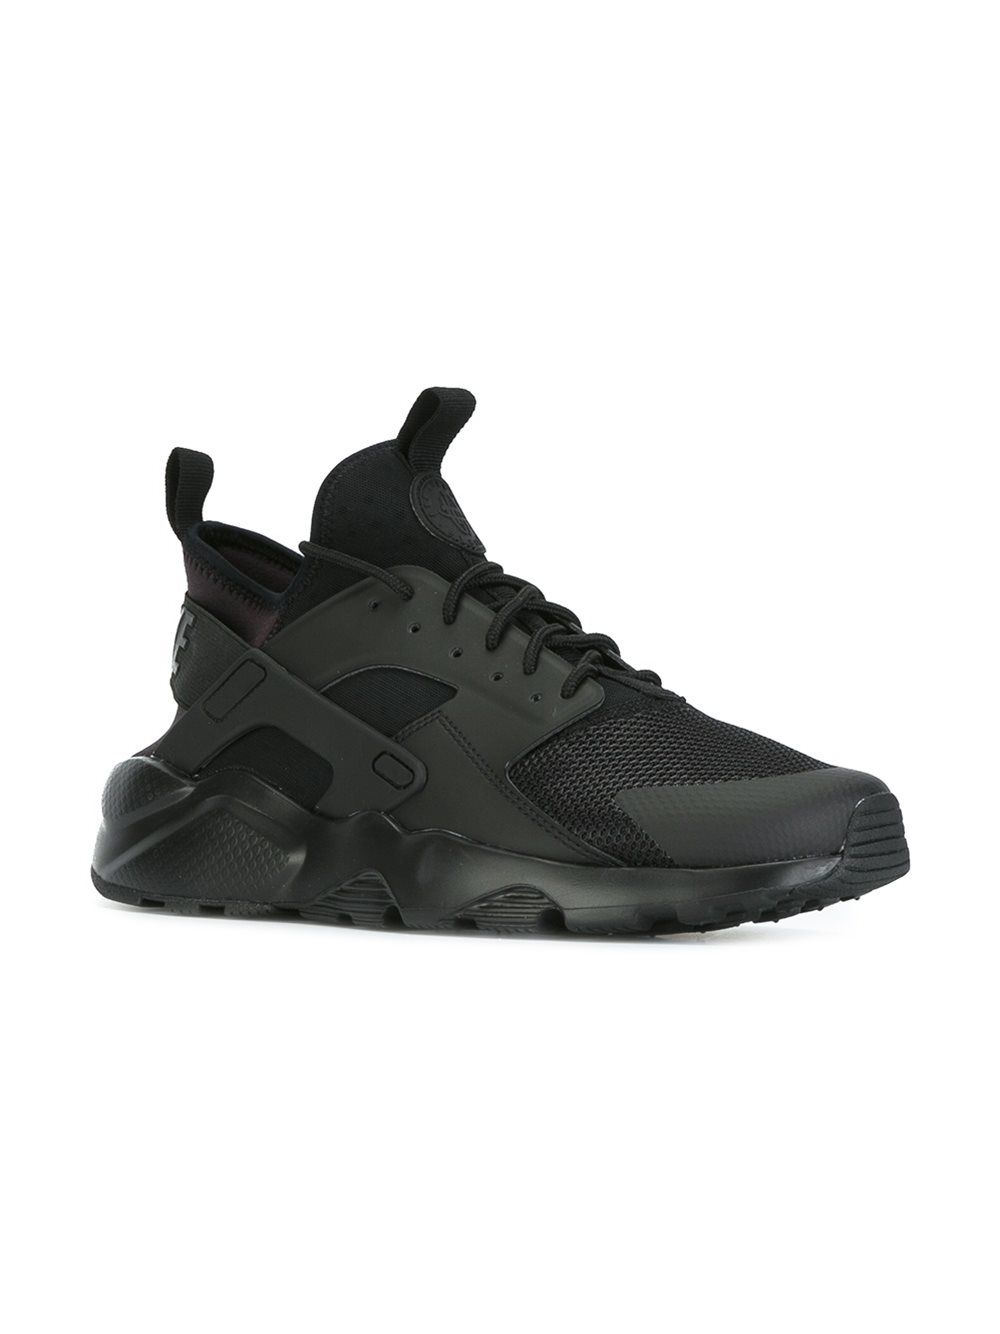 nike #men #sneakers #black #huarache #air #ultra #trainers